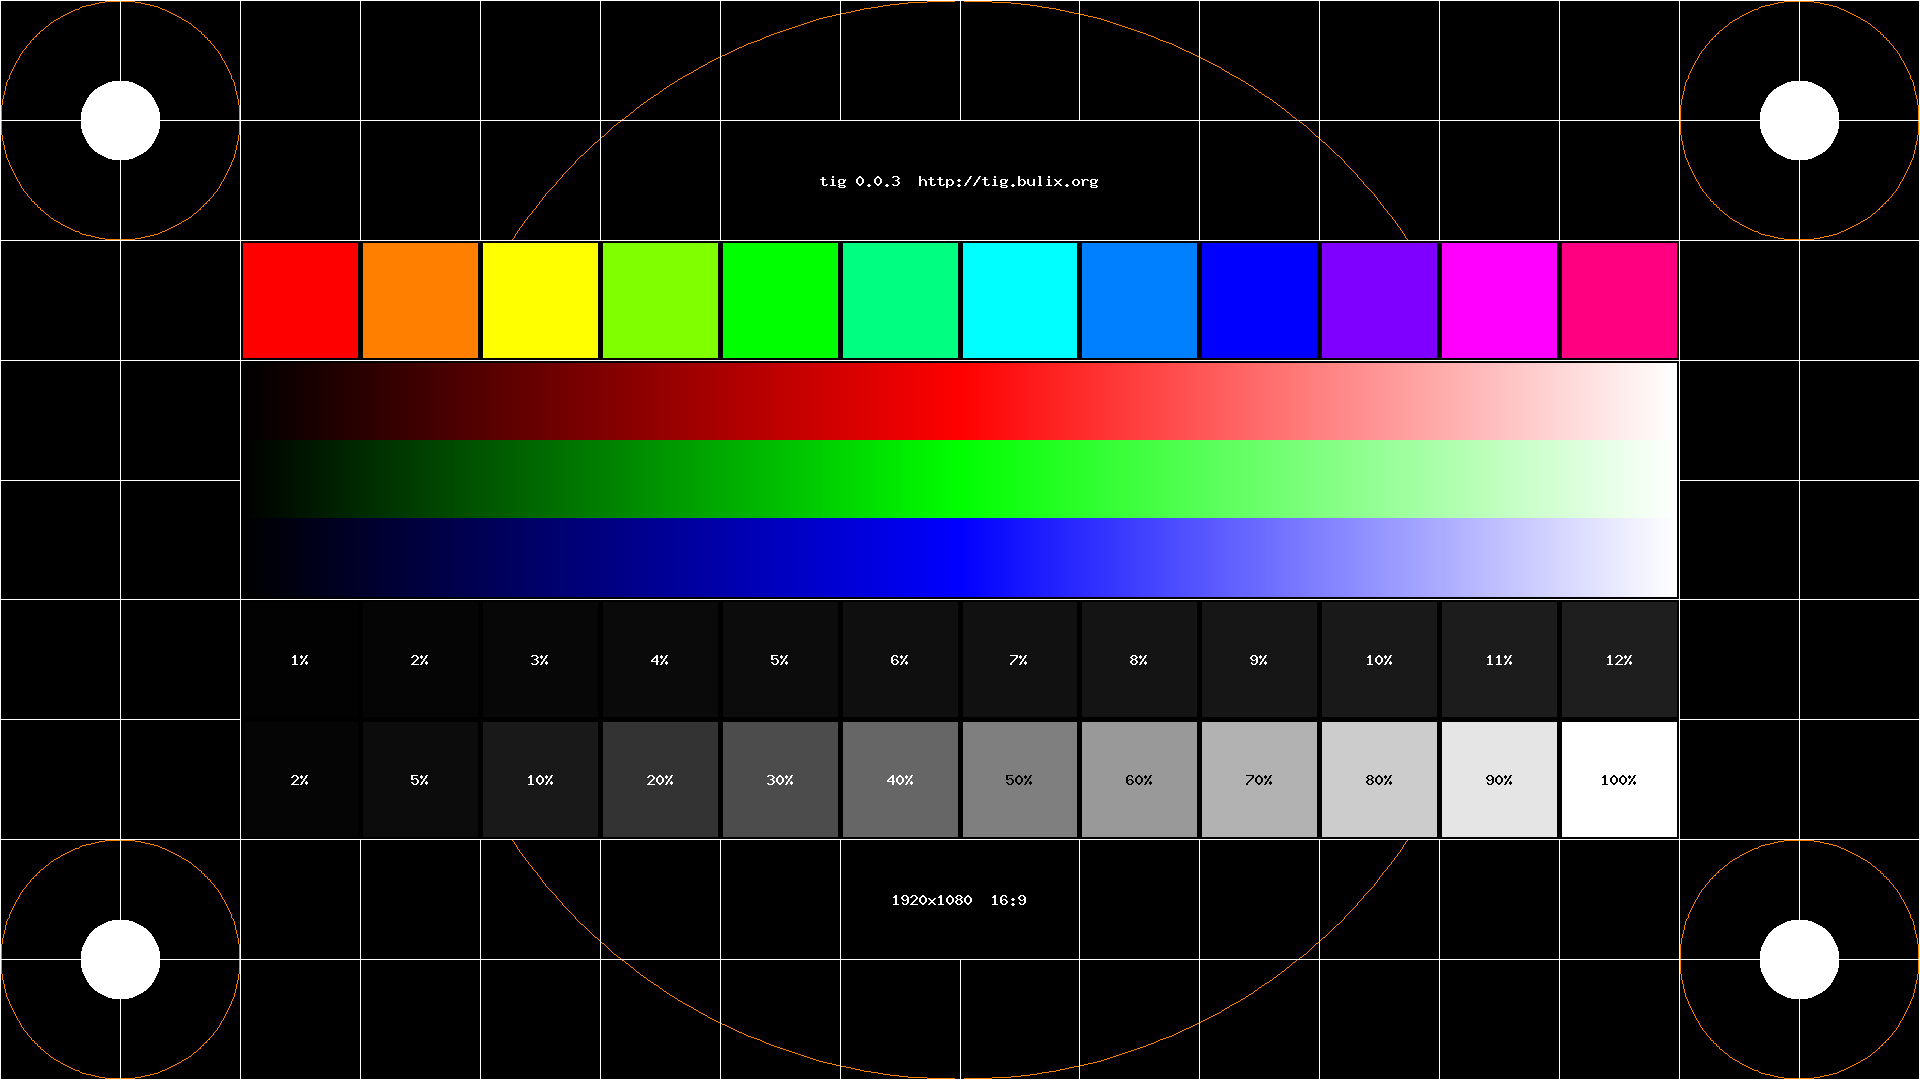 Collection of Monitor Color Calibration Image on HDWallpapers